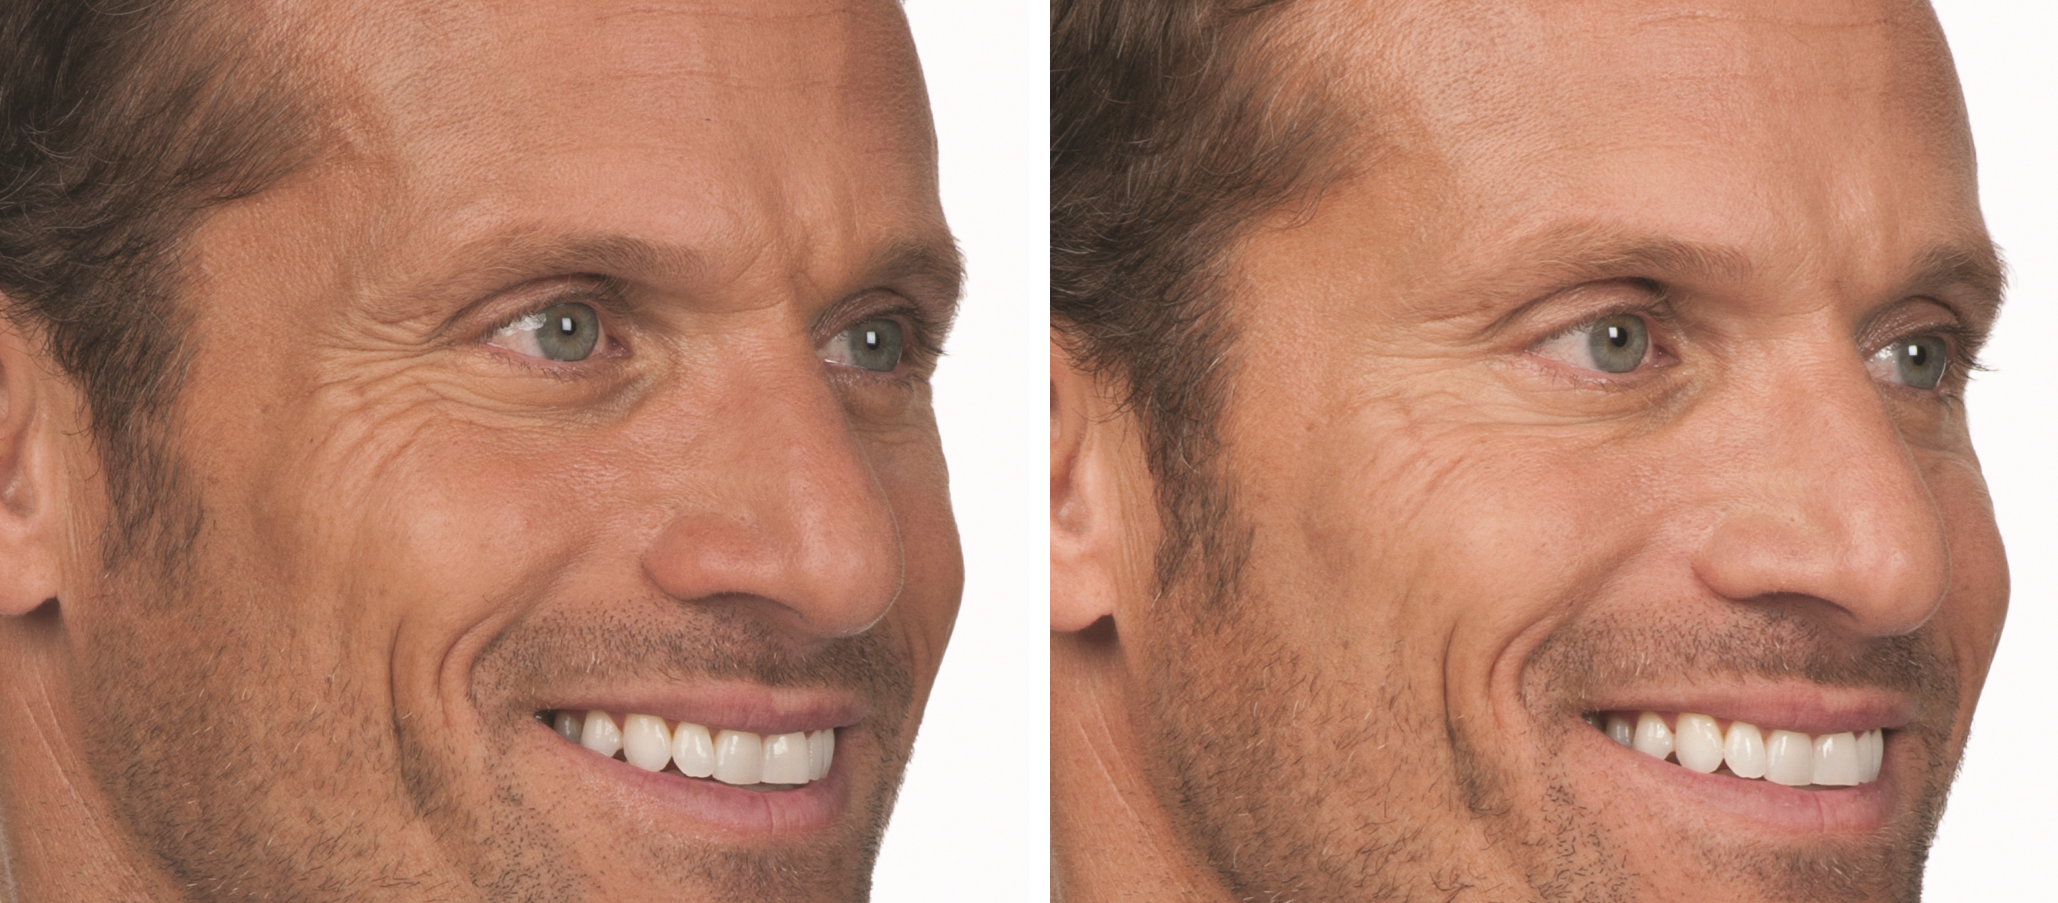 Botox for mens balls. Guys Are Injecting Botox Into Their ...